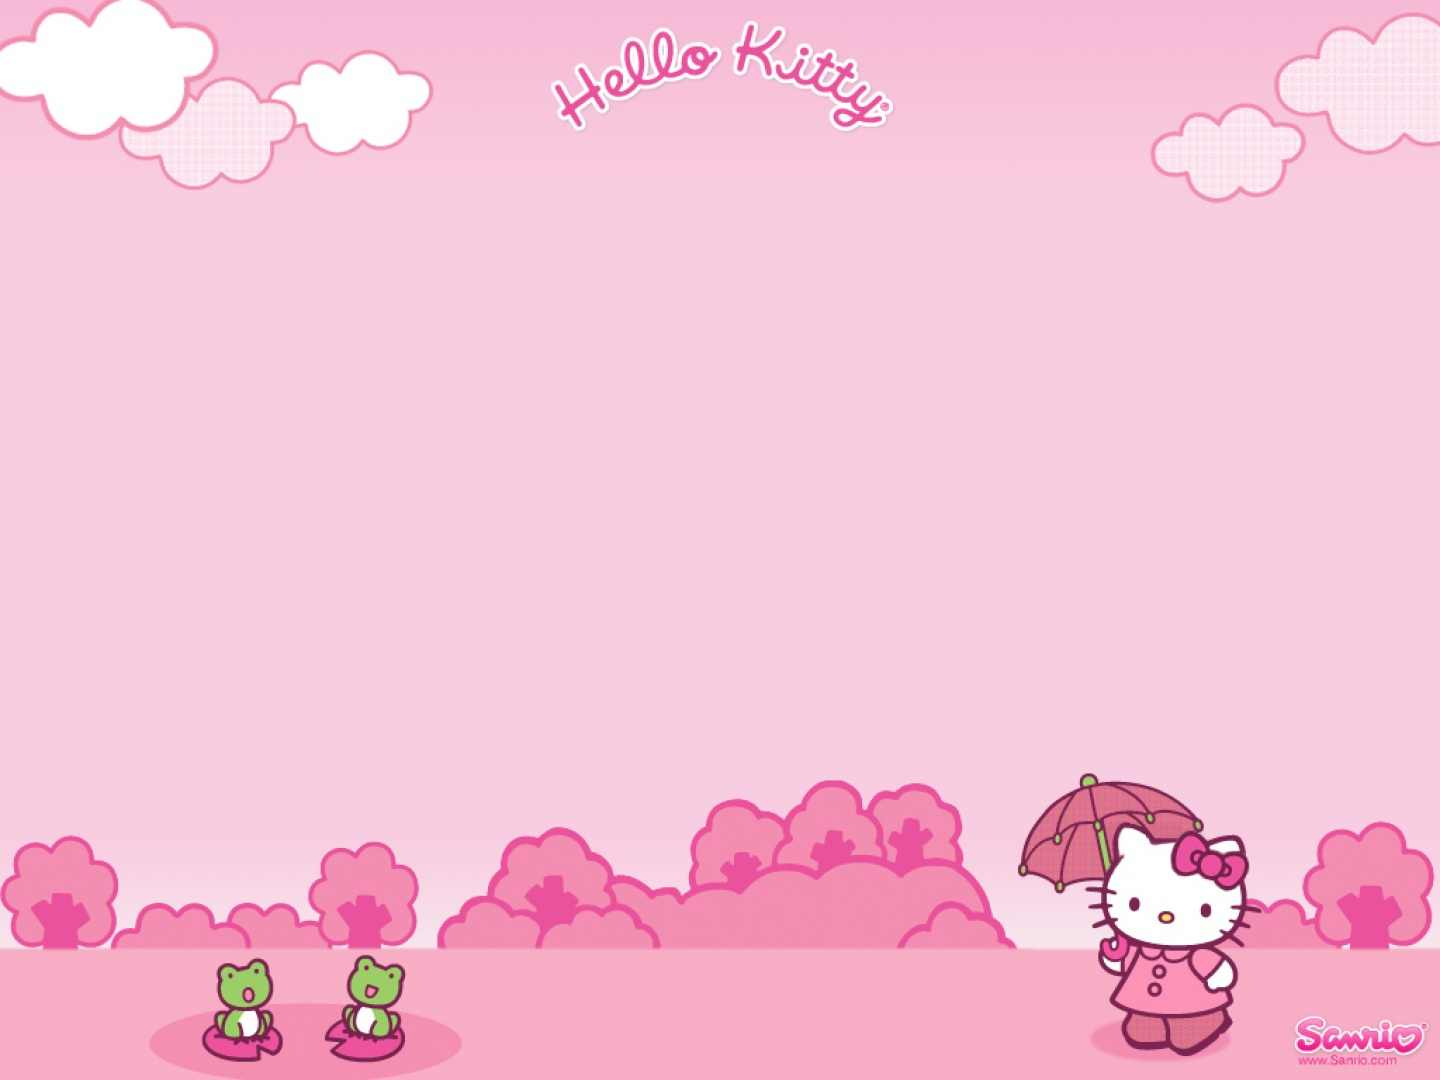 Free Download Hello Kitty Wallpaper 1440x1080 For Your Desktop